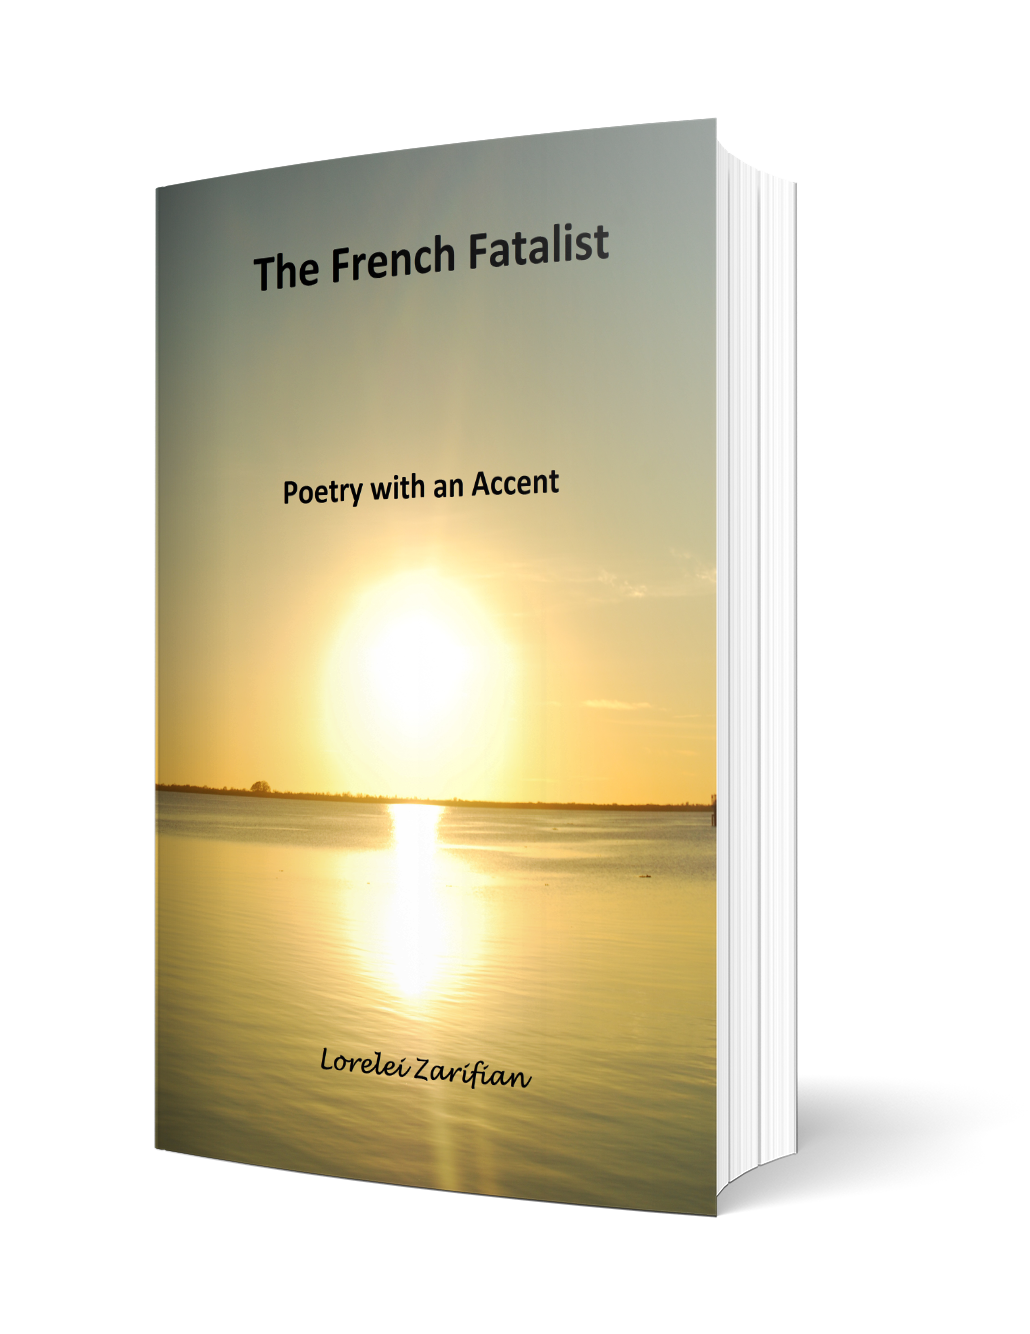 The French Fatalist